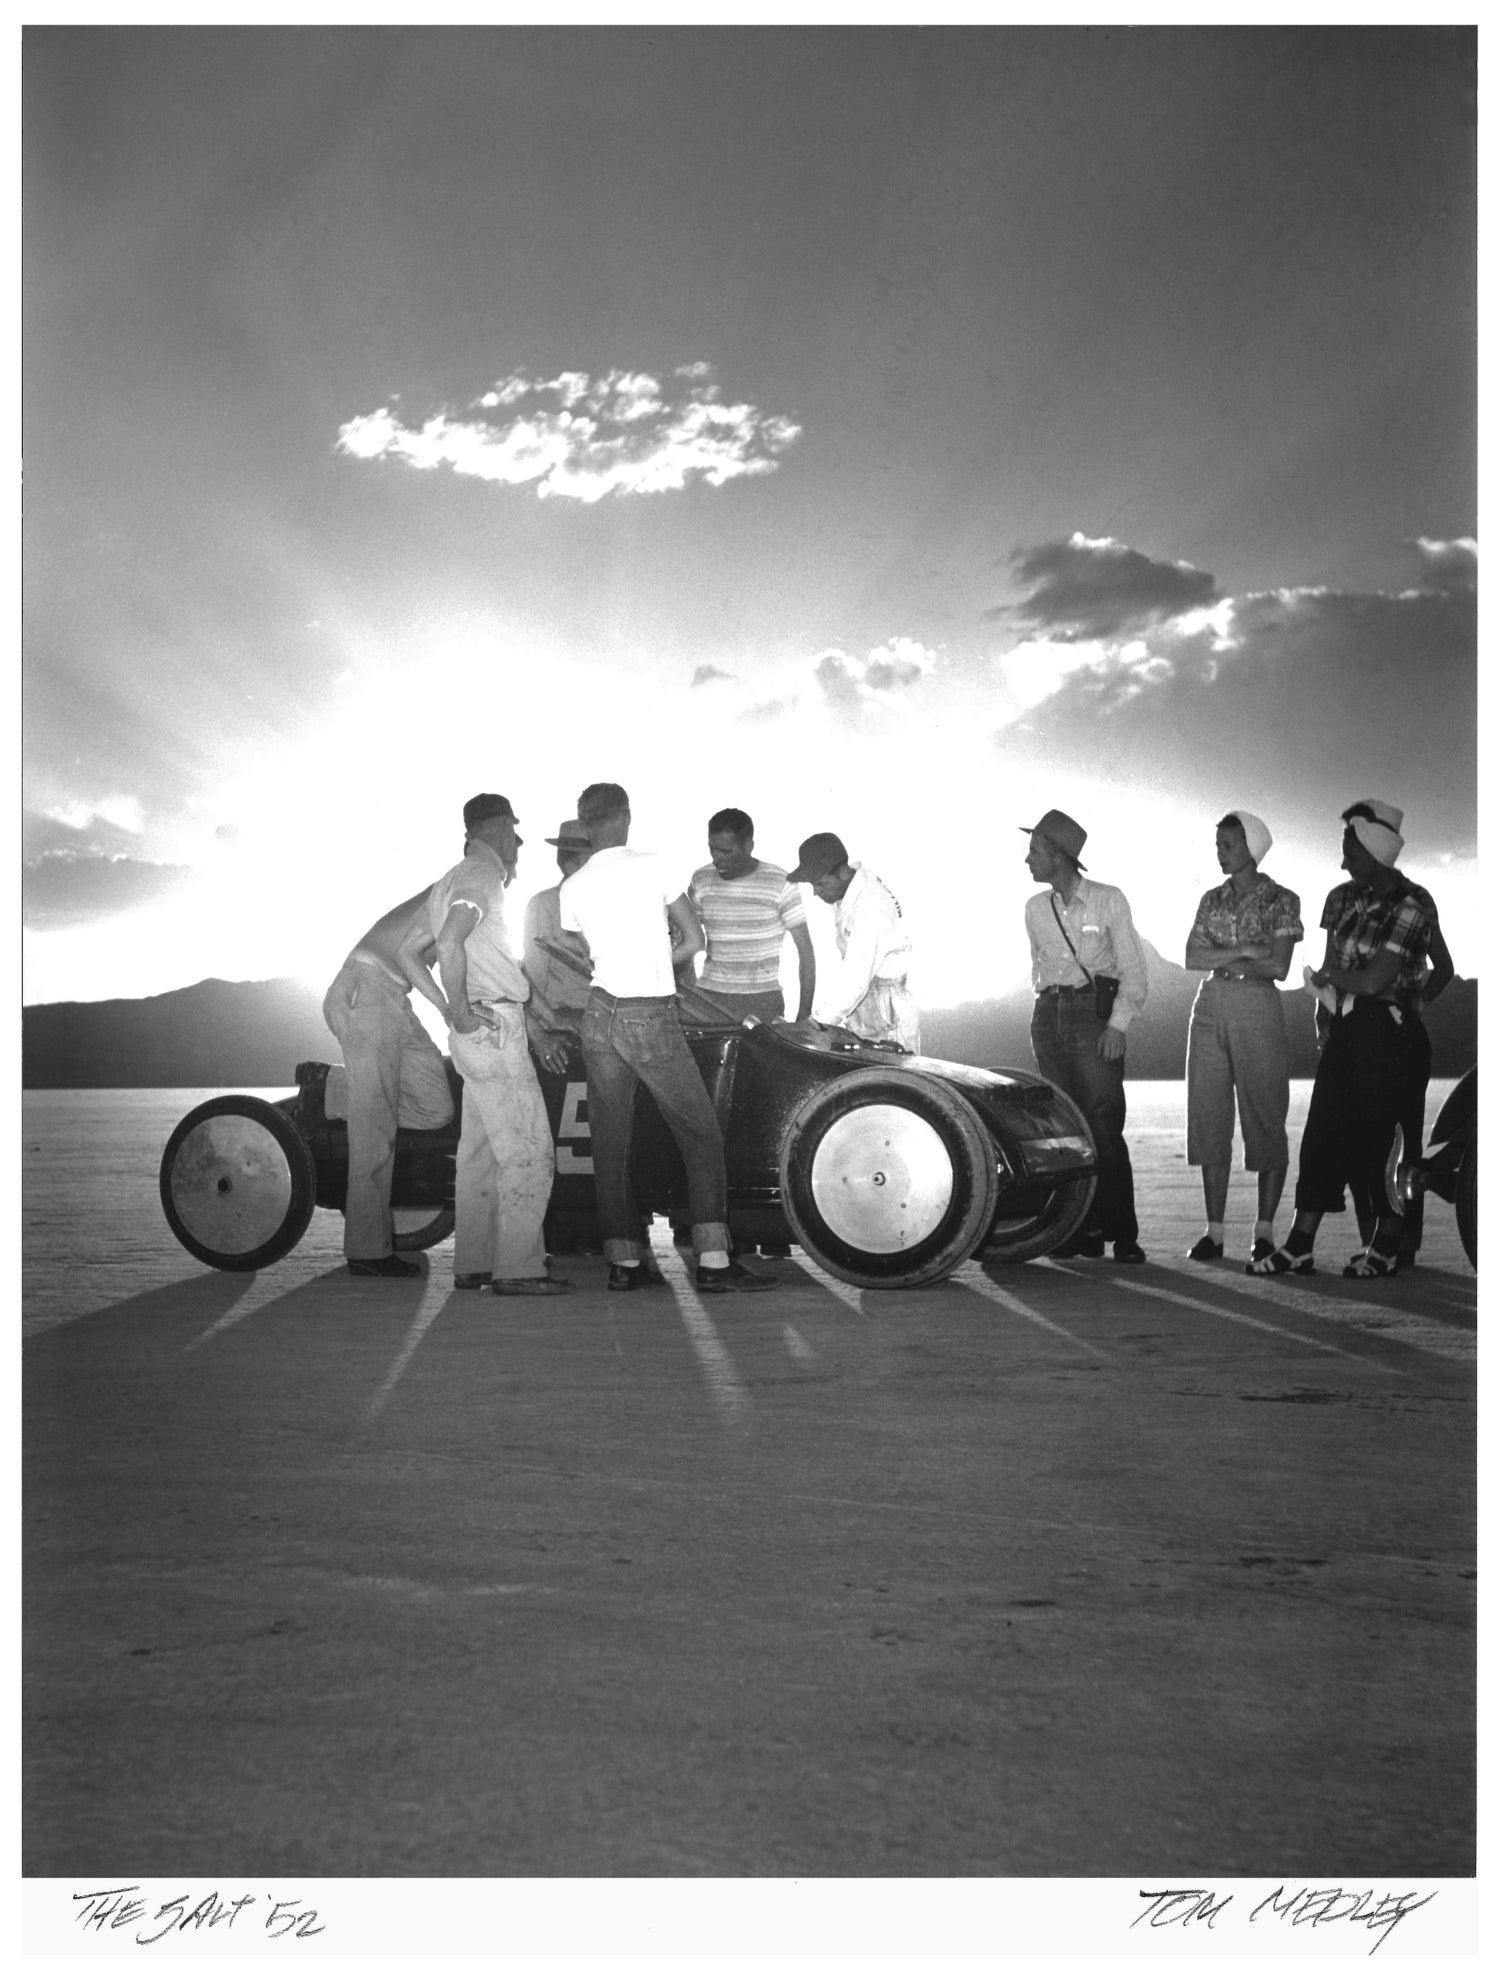 Sunrise over Salt. Bonneville 1952 Photographic Print